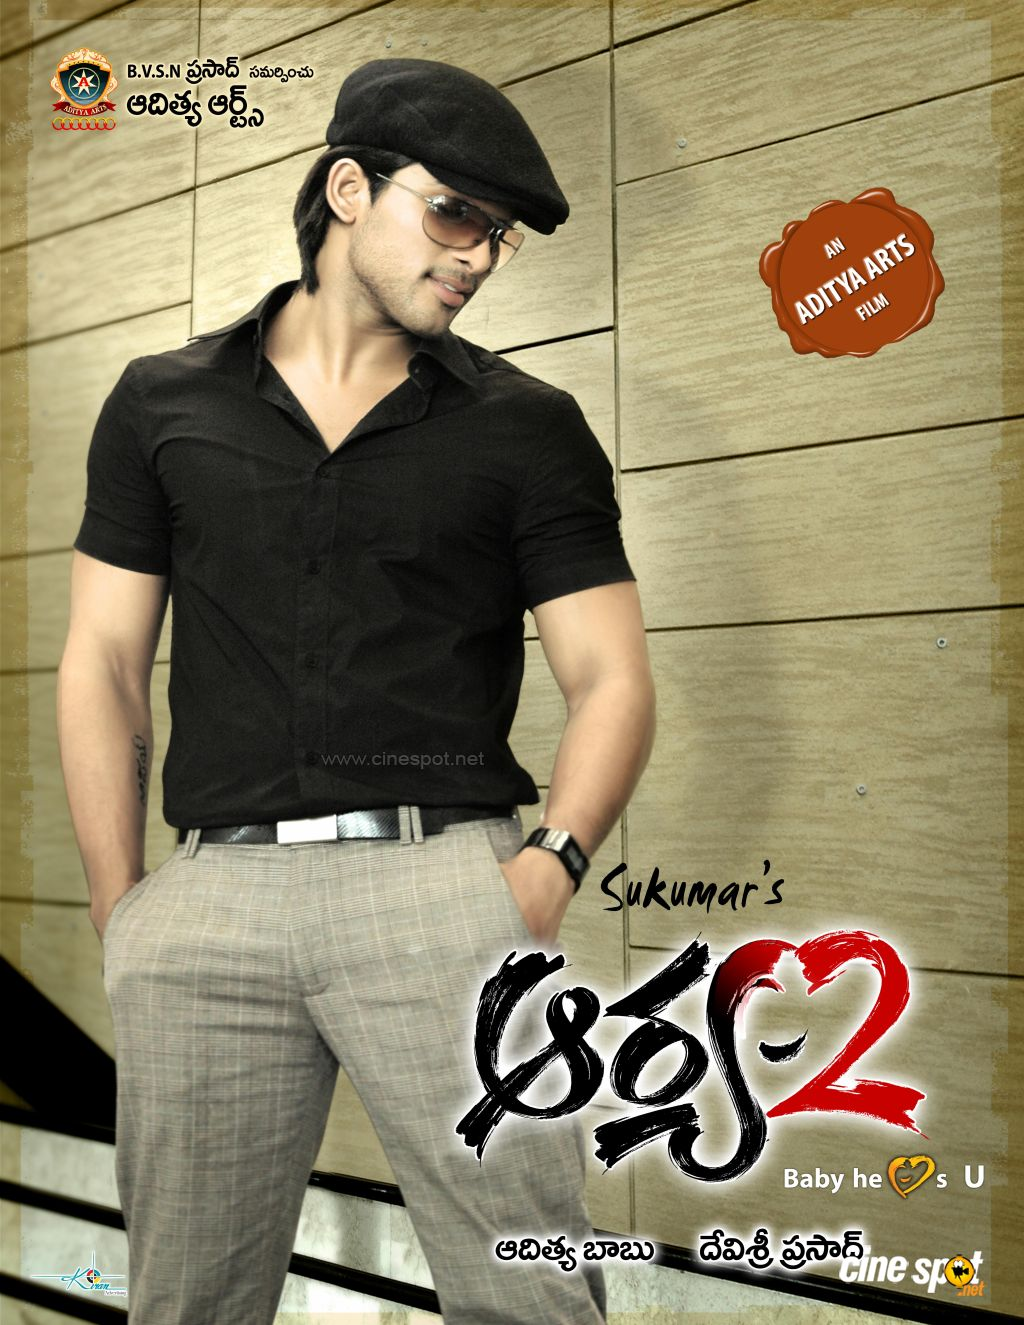 Download arya 2 mp3 songs student no. 1 images, pictures, photos.